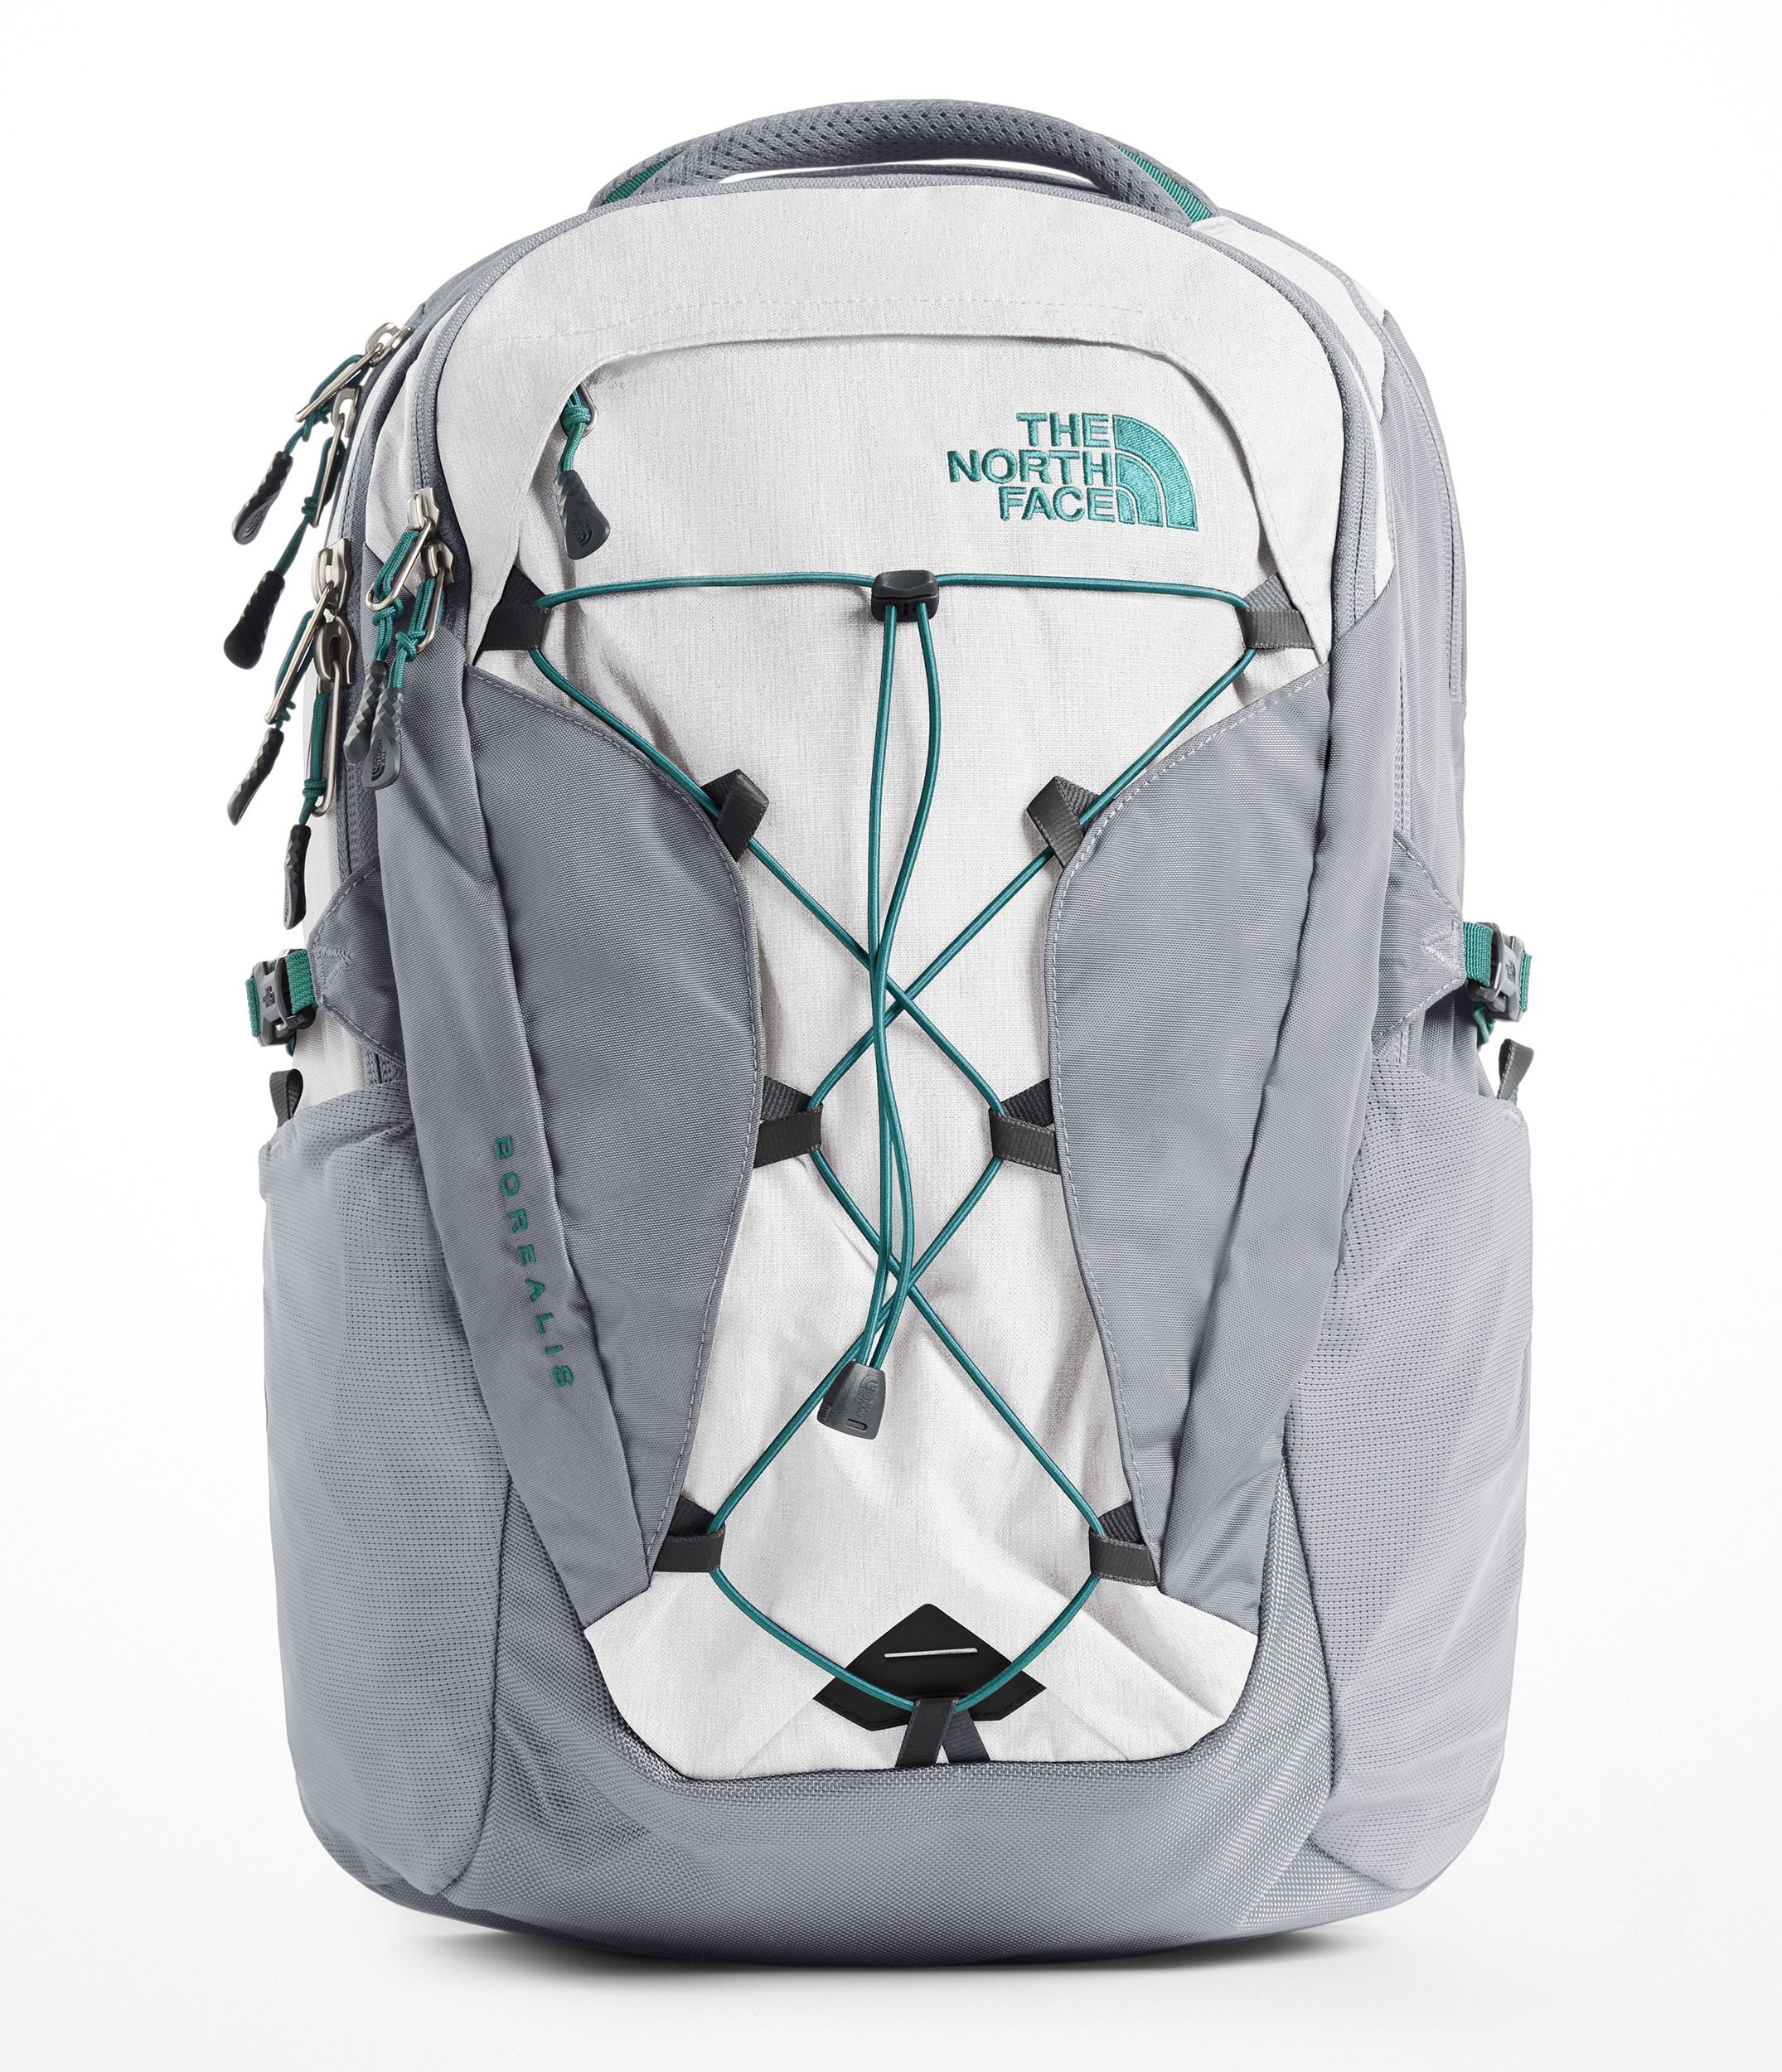 The North Face Women's Borealis Laptop Backpack - 15'' (Tin Grey/Mid Grey) by The North Face (Image #1)